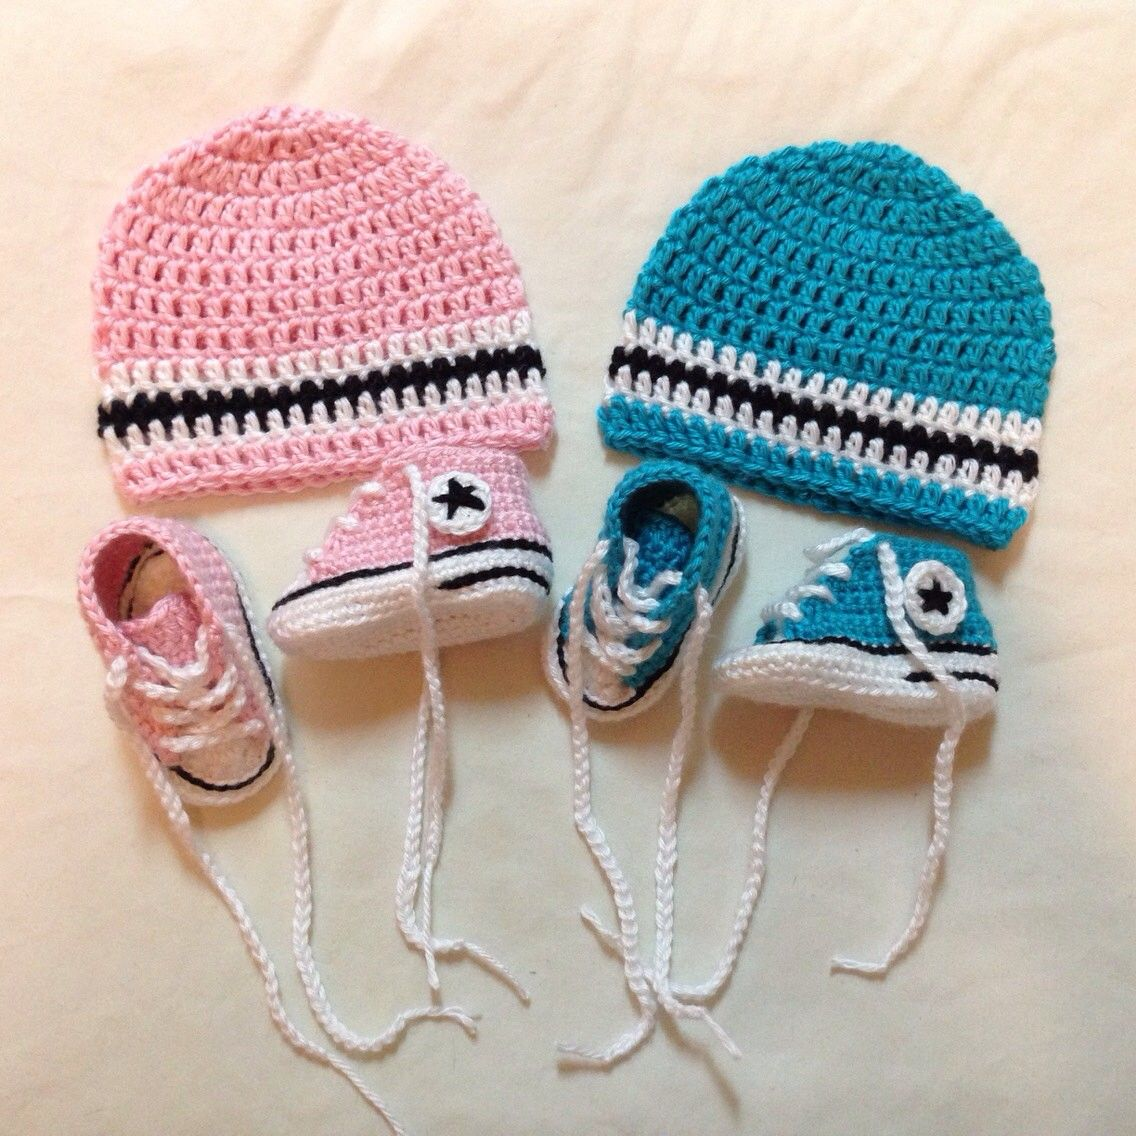 Where to Buy Crochet Converse Sneakers and matching Beanie - 2015 ...